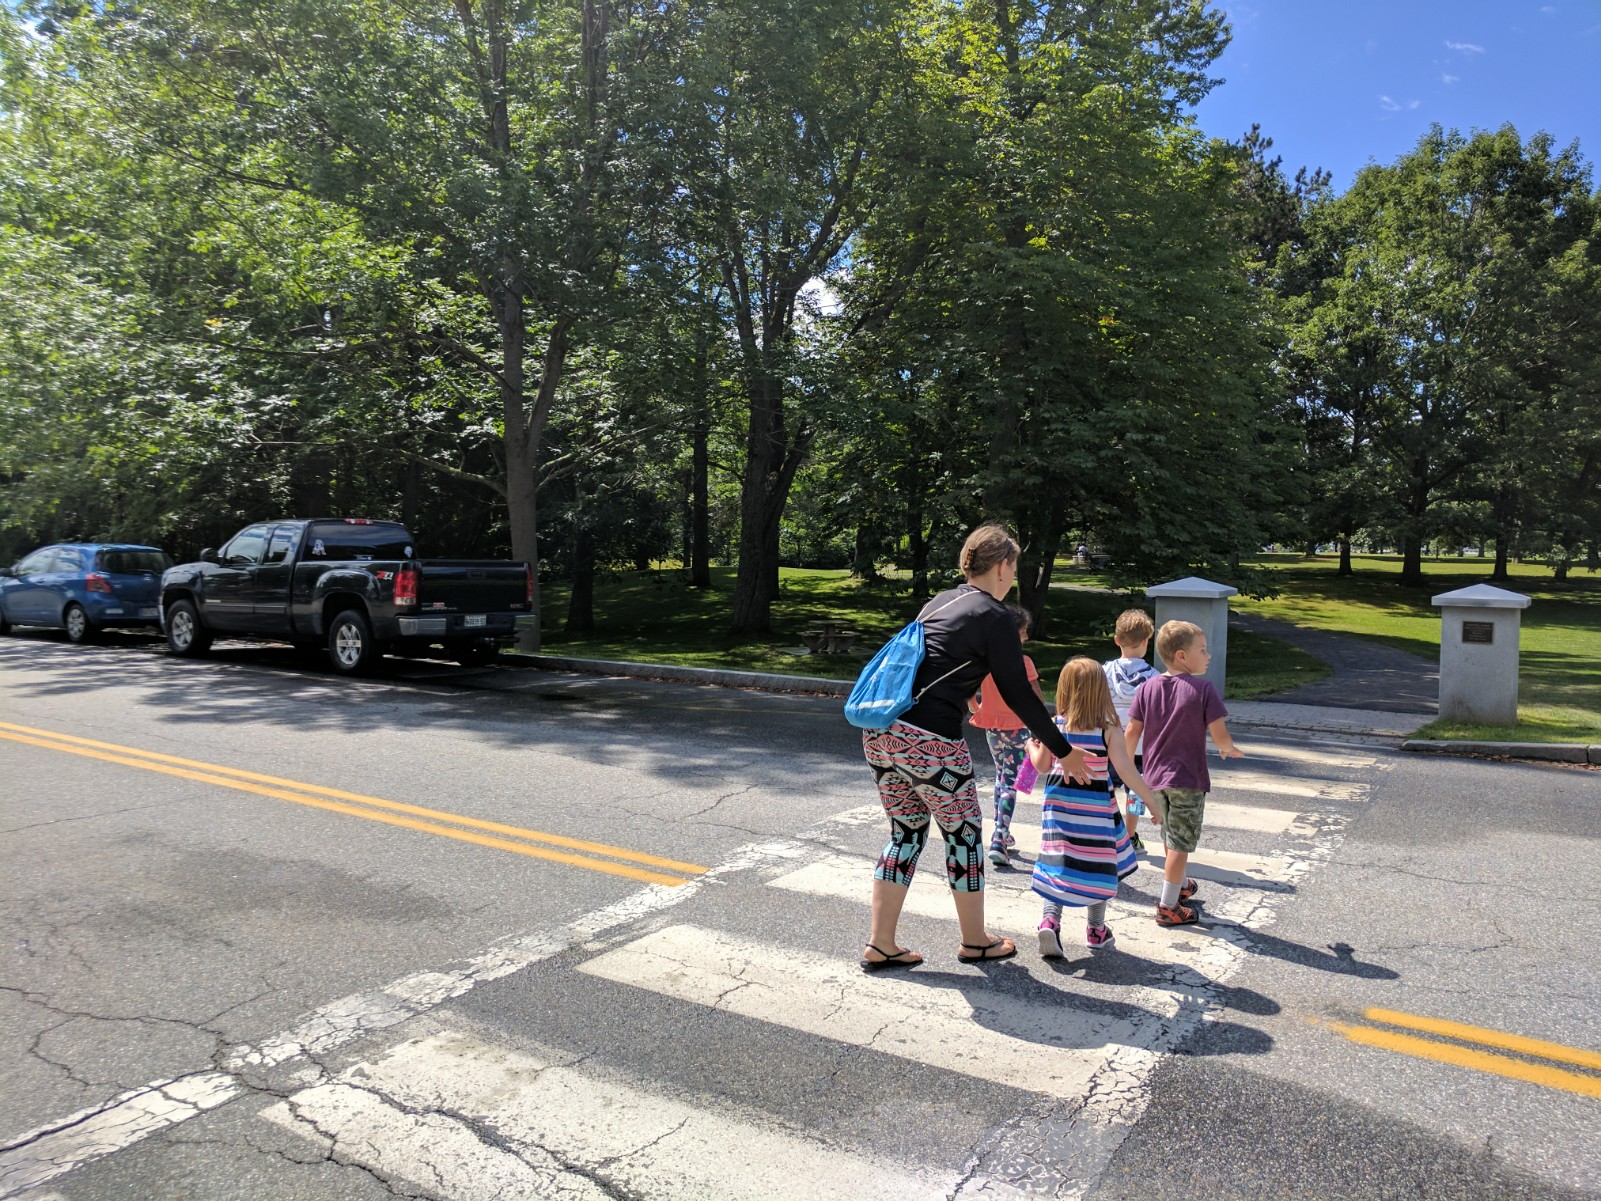 Kids in crosswalk #2